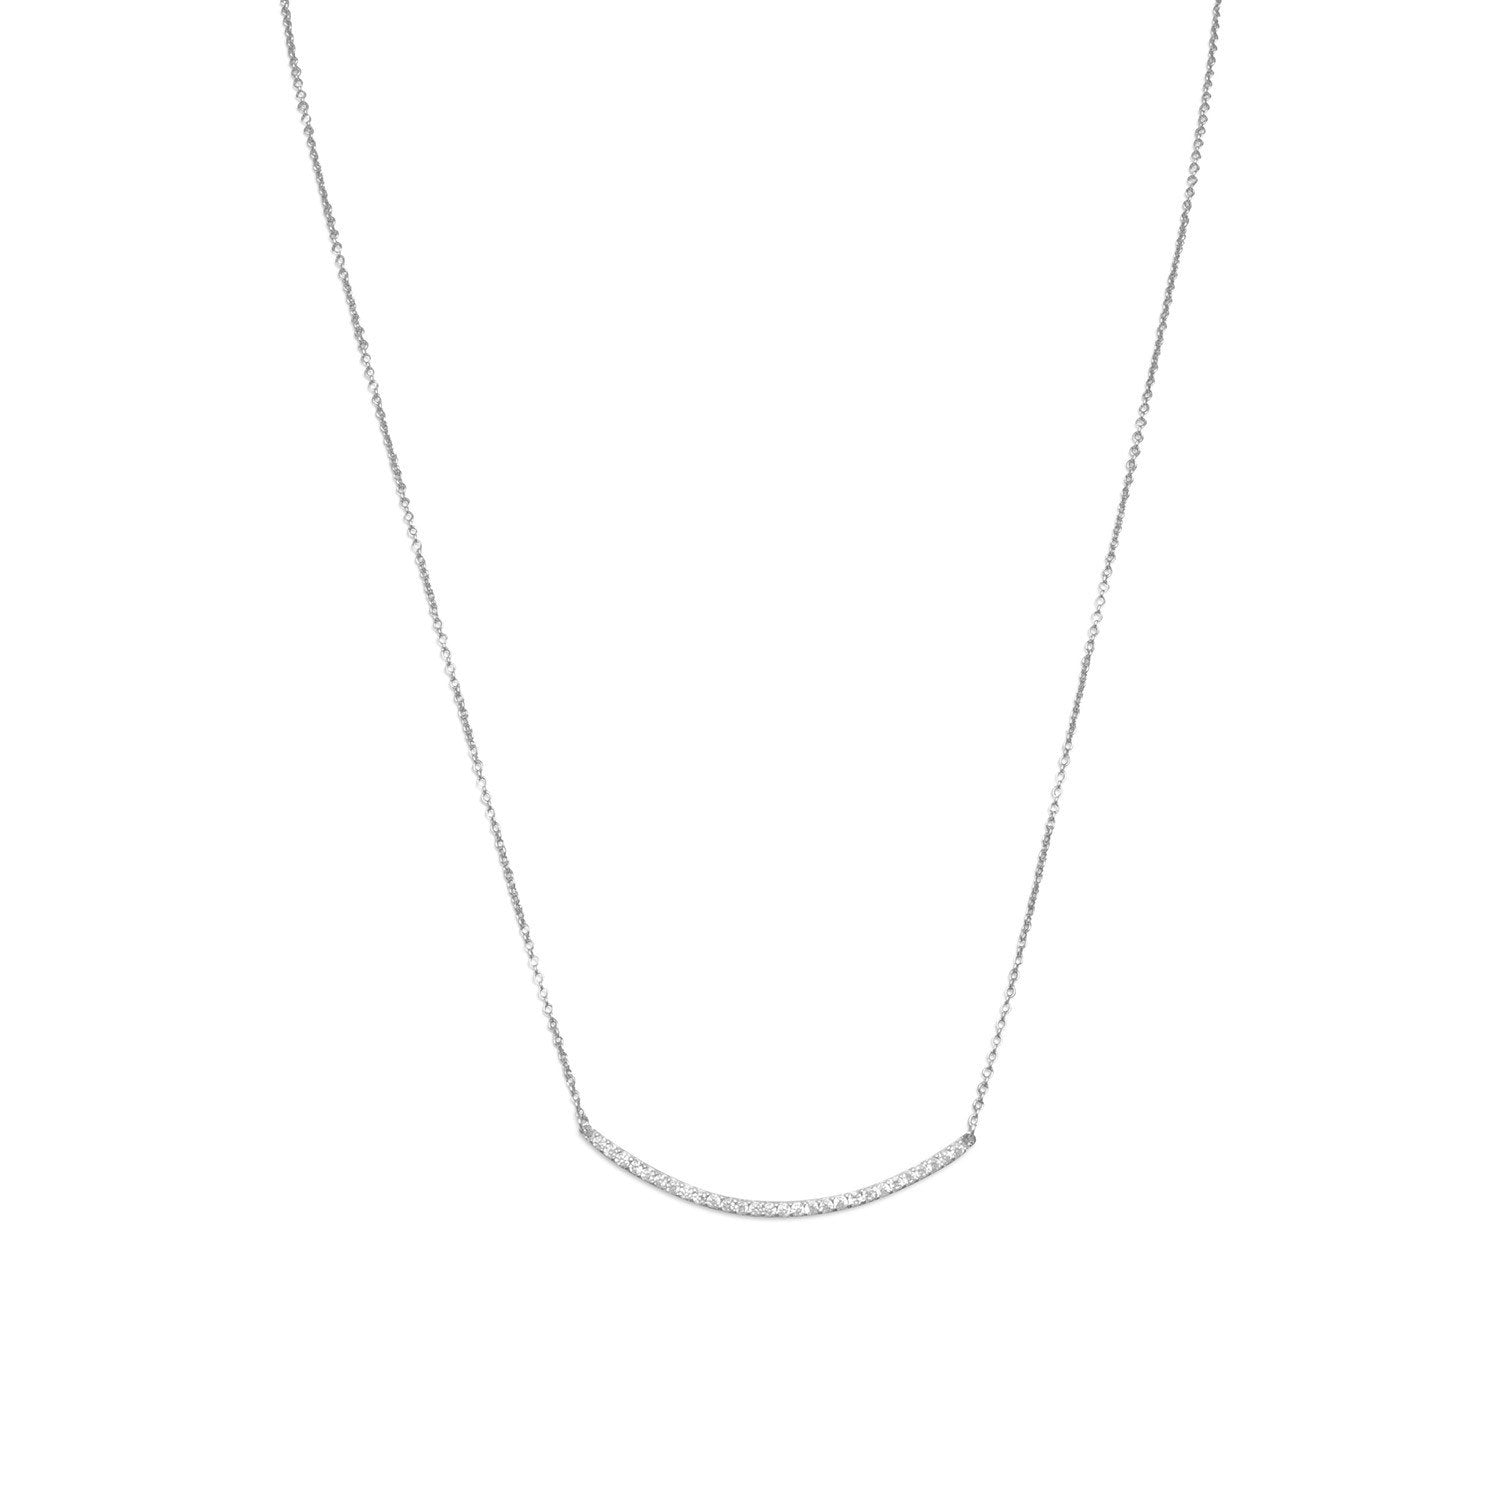 "18"" + 2"" Rhodium Plated Curved CZ Bar Necklace - Rocky Mt. Discount Outlet"